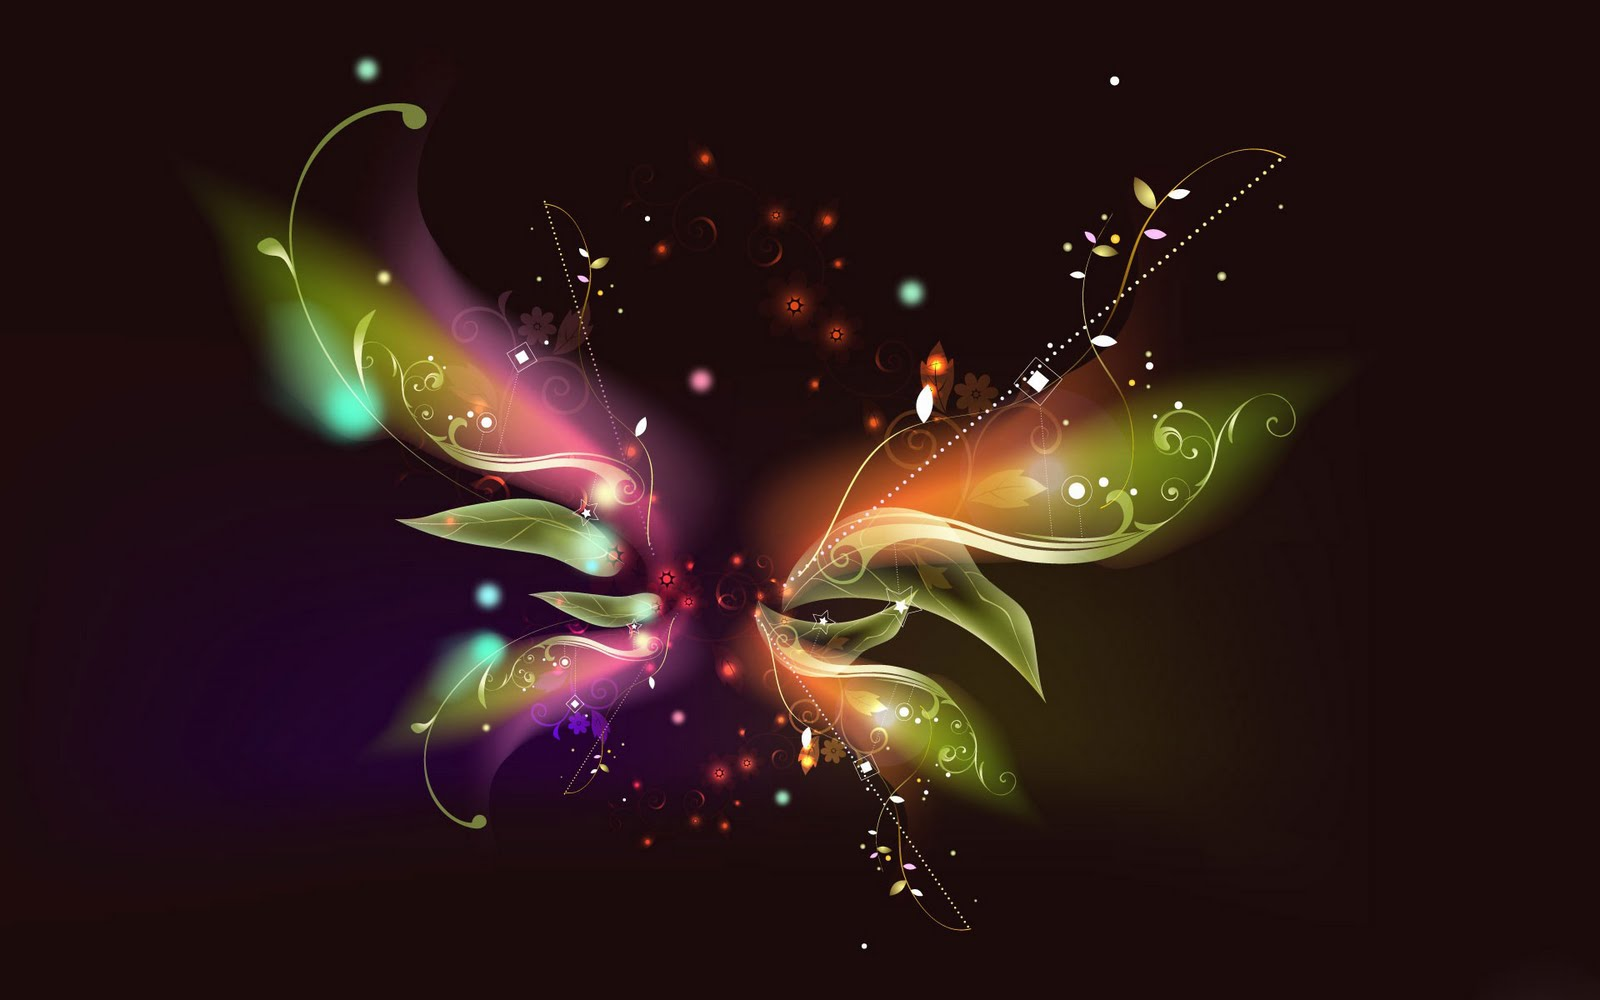 http://4.bp.blogspot.com/-GR1HTND2c7E/T5_S861fqRI/AAAAAAAABJo/mzVMmgPtIoU/s1600/Elektric_Butterfly_desktop_background.jpg